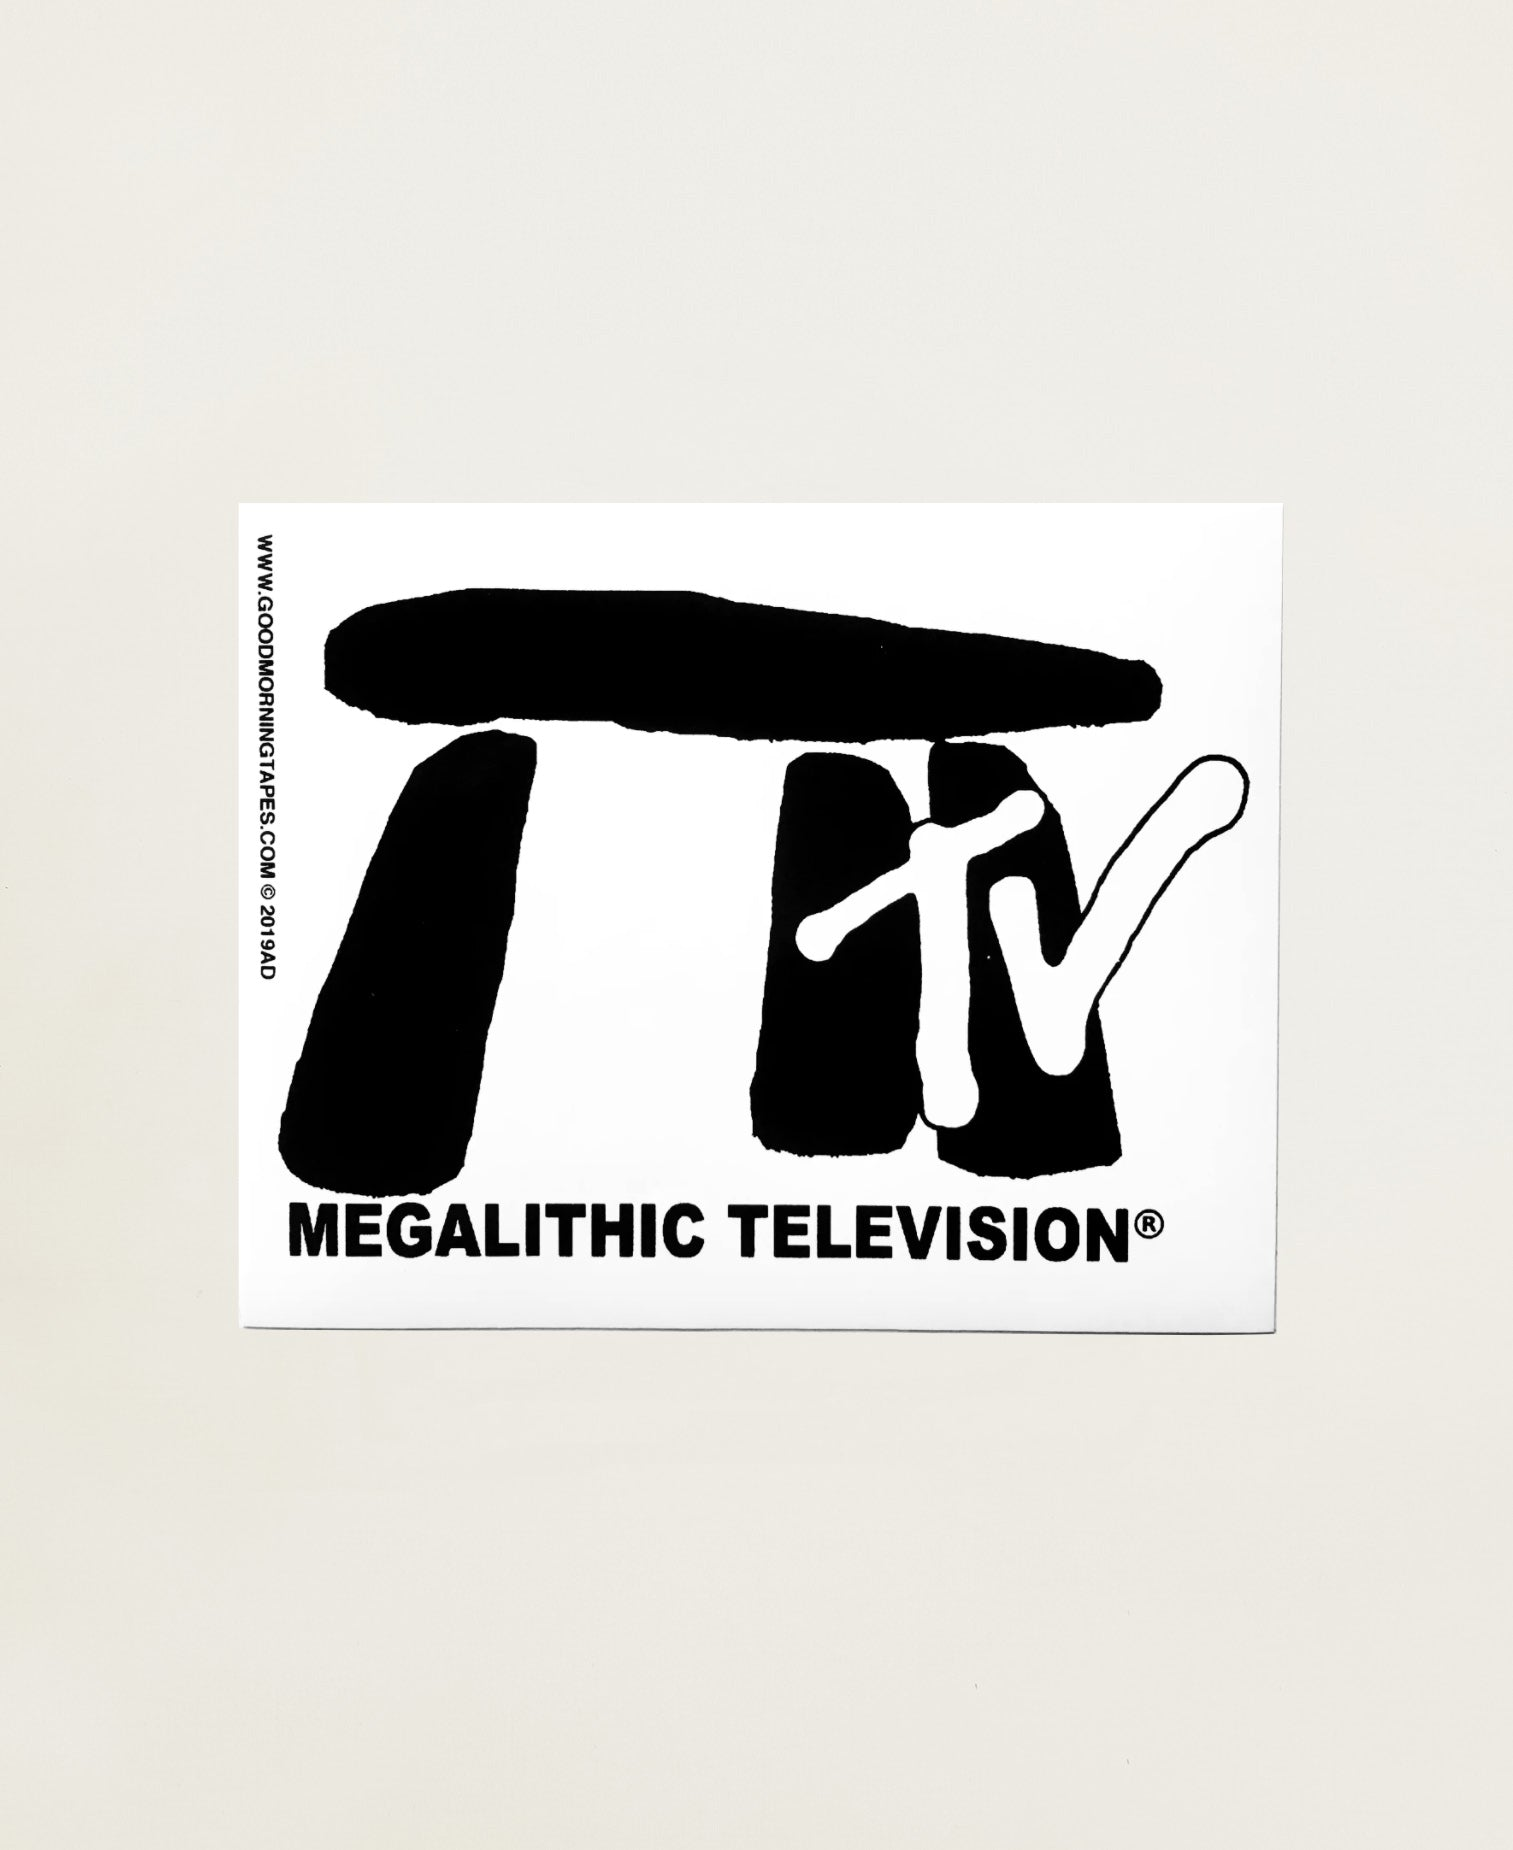 MEGALITHIC TV BUMPER STICKER - WHITE